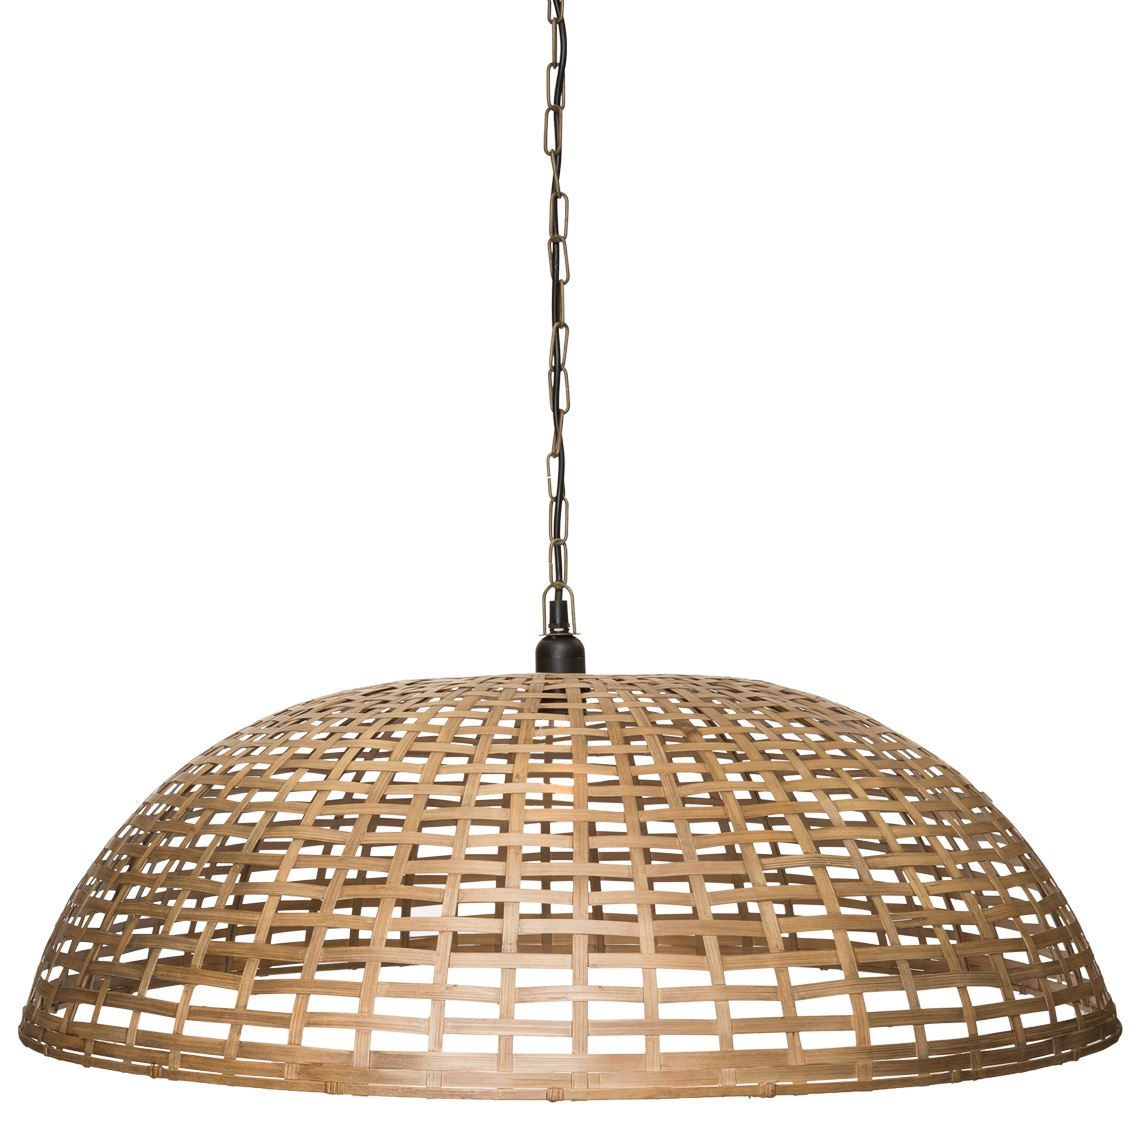 Dome Basket Ceiling Pendant Light Size W 80cm x D 80cm x H 26cm in Bamboo Flat Sheet/Metal Wire/Bamboo Freedom by Freedom, a Pendant Lighting for sale on Style Sourcebook